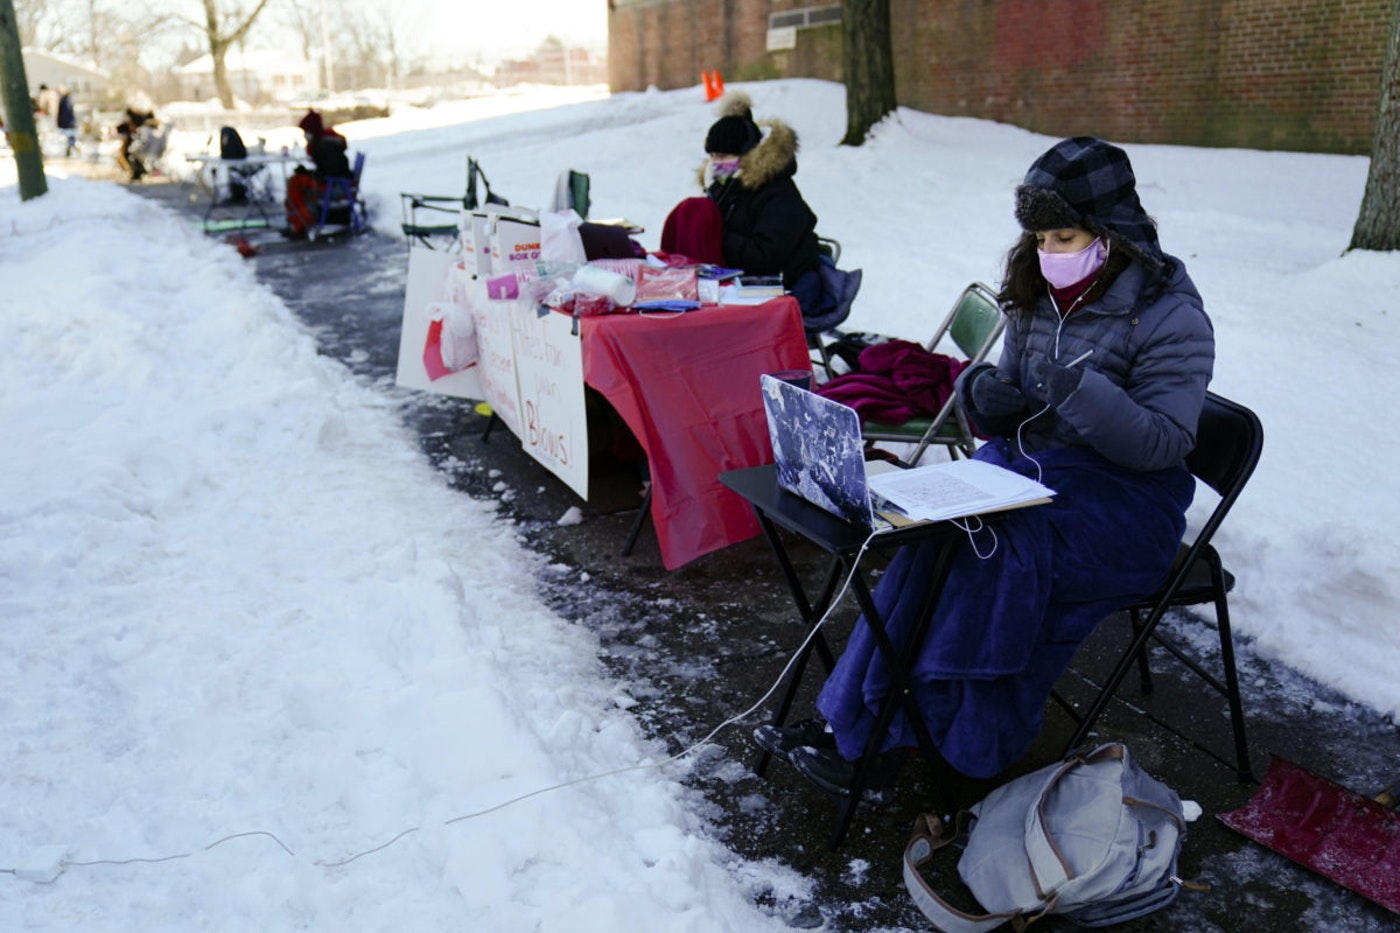 Teachers including Kathy Volin, right, and Dana Cohen, center, conduct their classes online from laptops during freezing temperatures outside the Joseph Greenberg School in Philadelphia, Monday, Feb. 8, 2021. A mediator will decide if Philadelphia school teachers must return to their classrooms despite safety concerns as the district plans to resume in-person instruction later this month. (AP Photo/Matt Rourke)